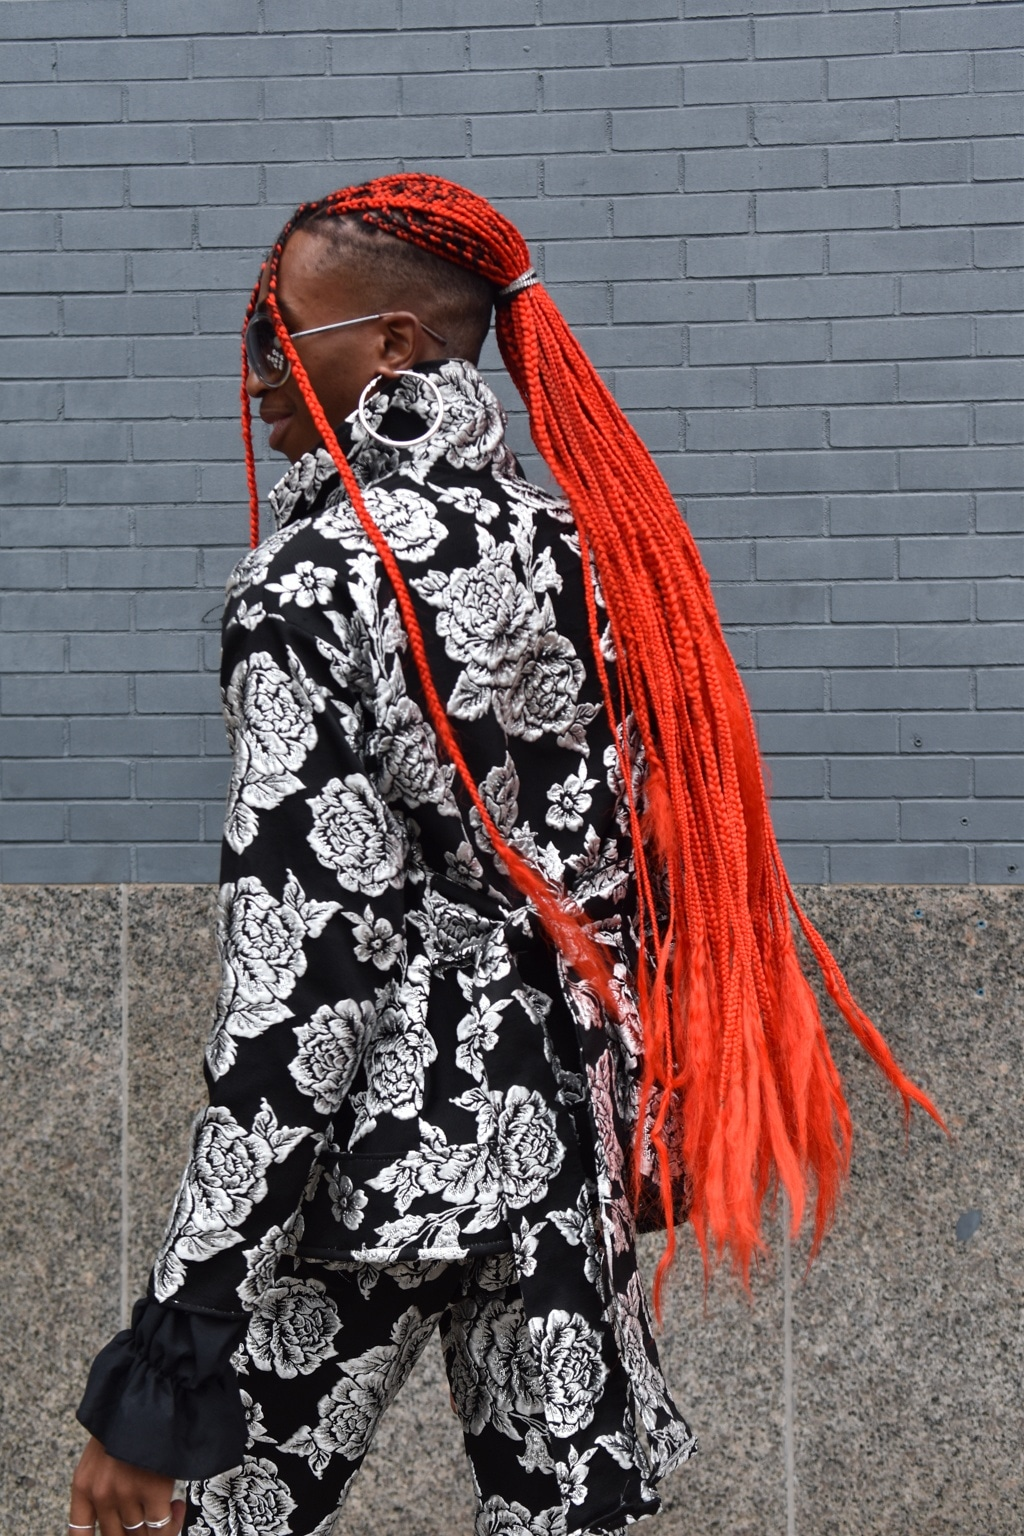 NYFW SS19 street style: Street style shot of a woman with long orange red box braids in a low ponytail hairstyle